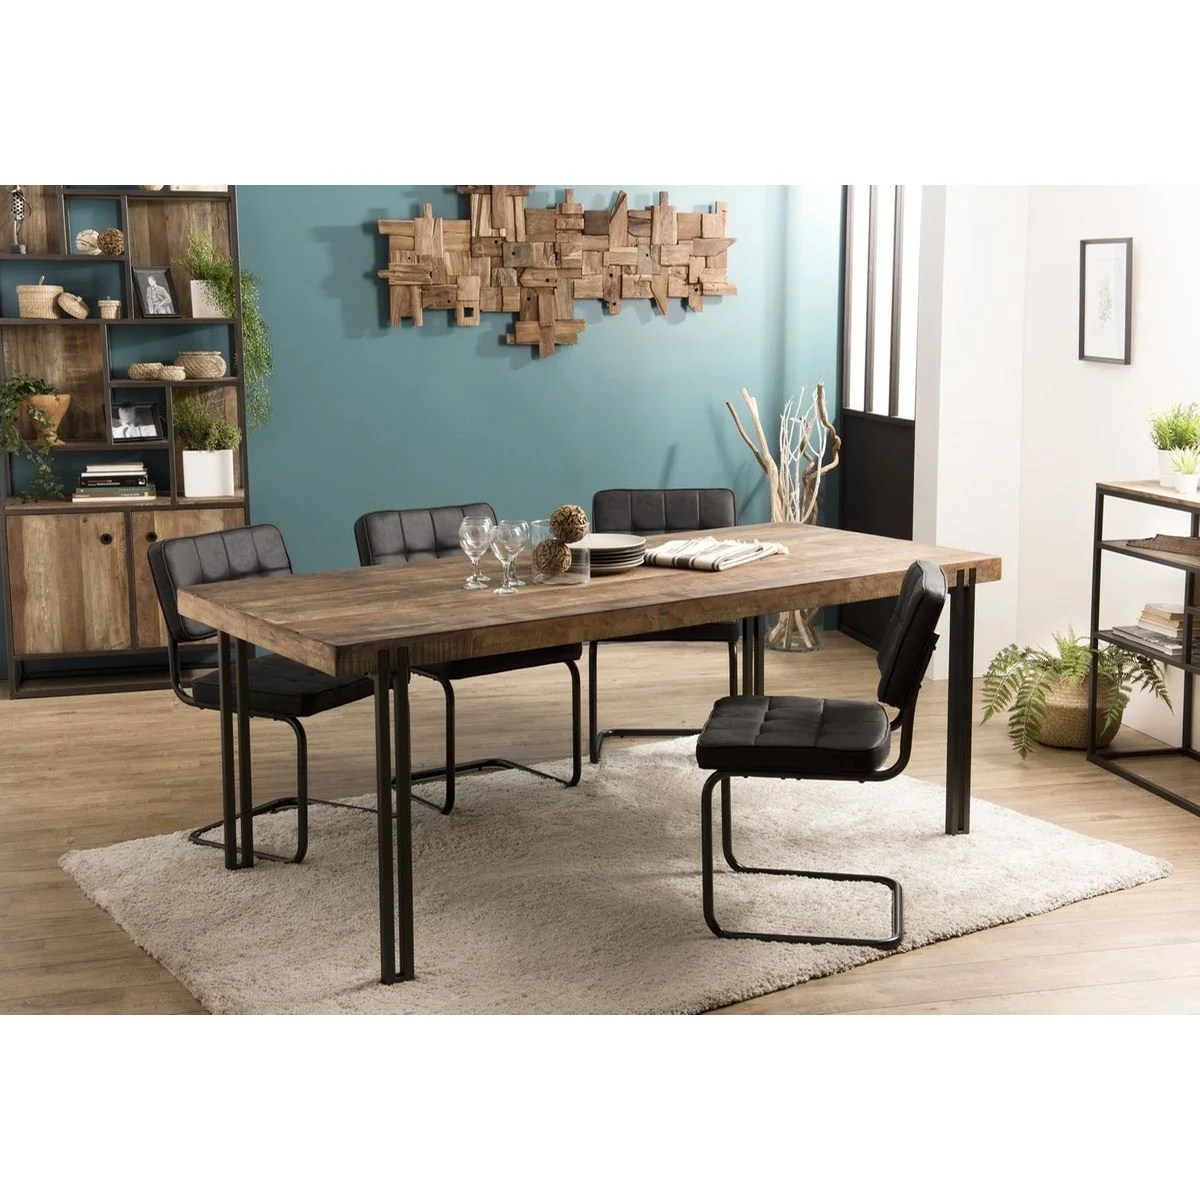 PIERIMPORT – TABLE A MANGER TECK RECYCLE